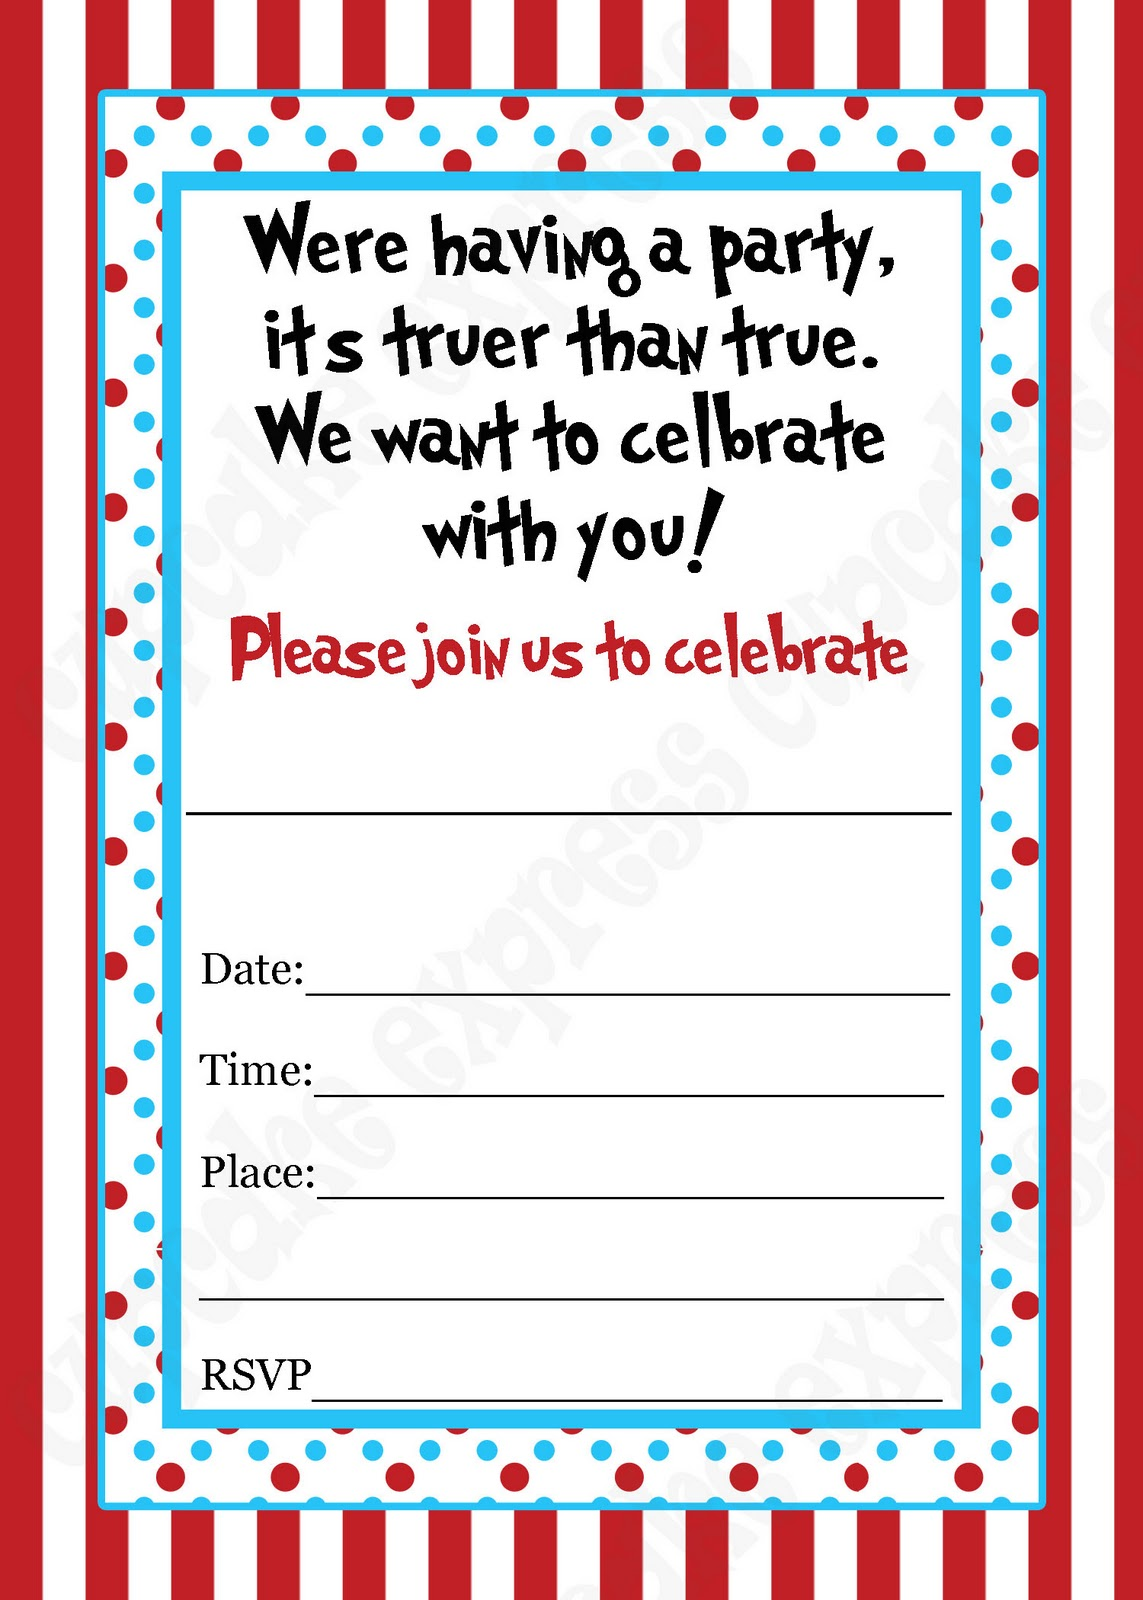 dr seuss birthday card template - 40th birthday ideas blank birthday invitation templates free